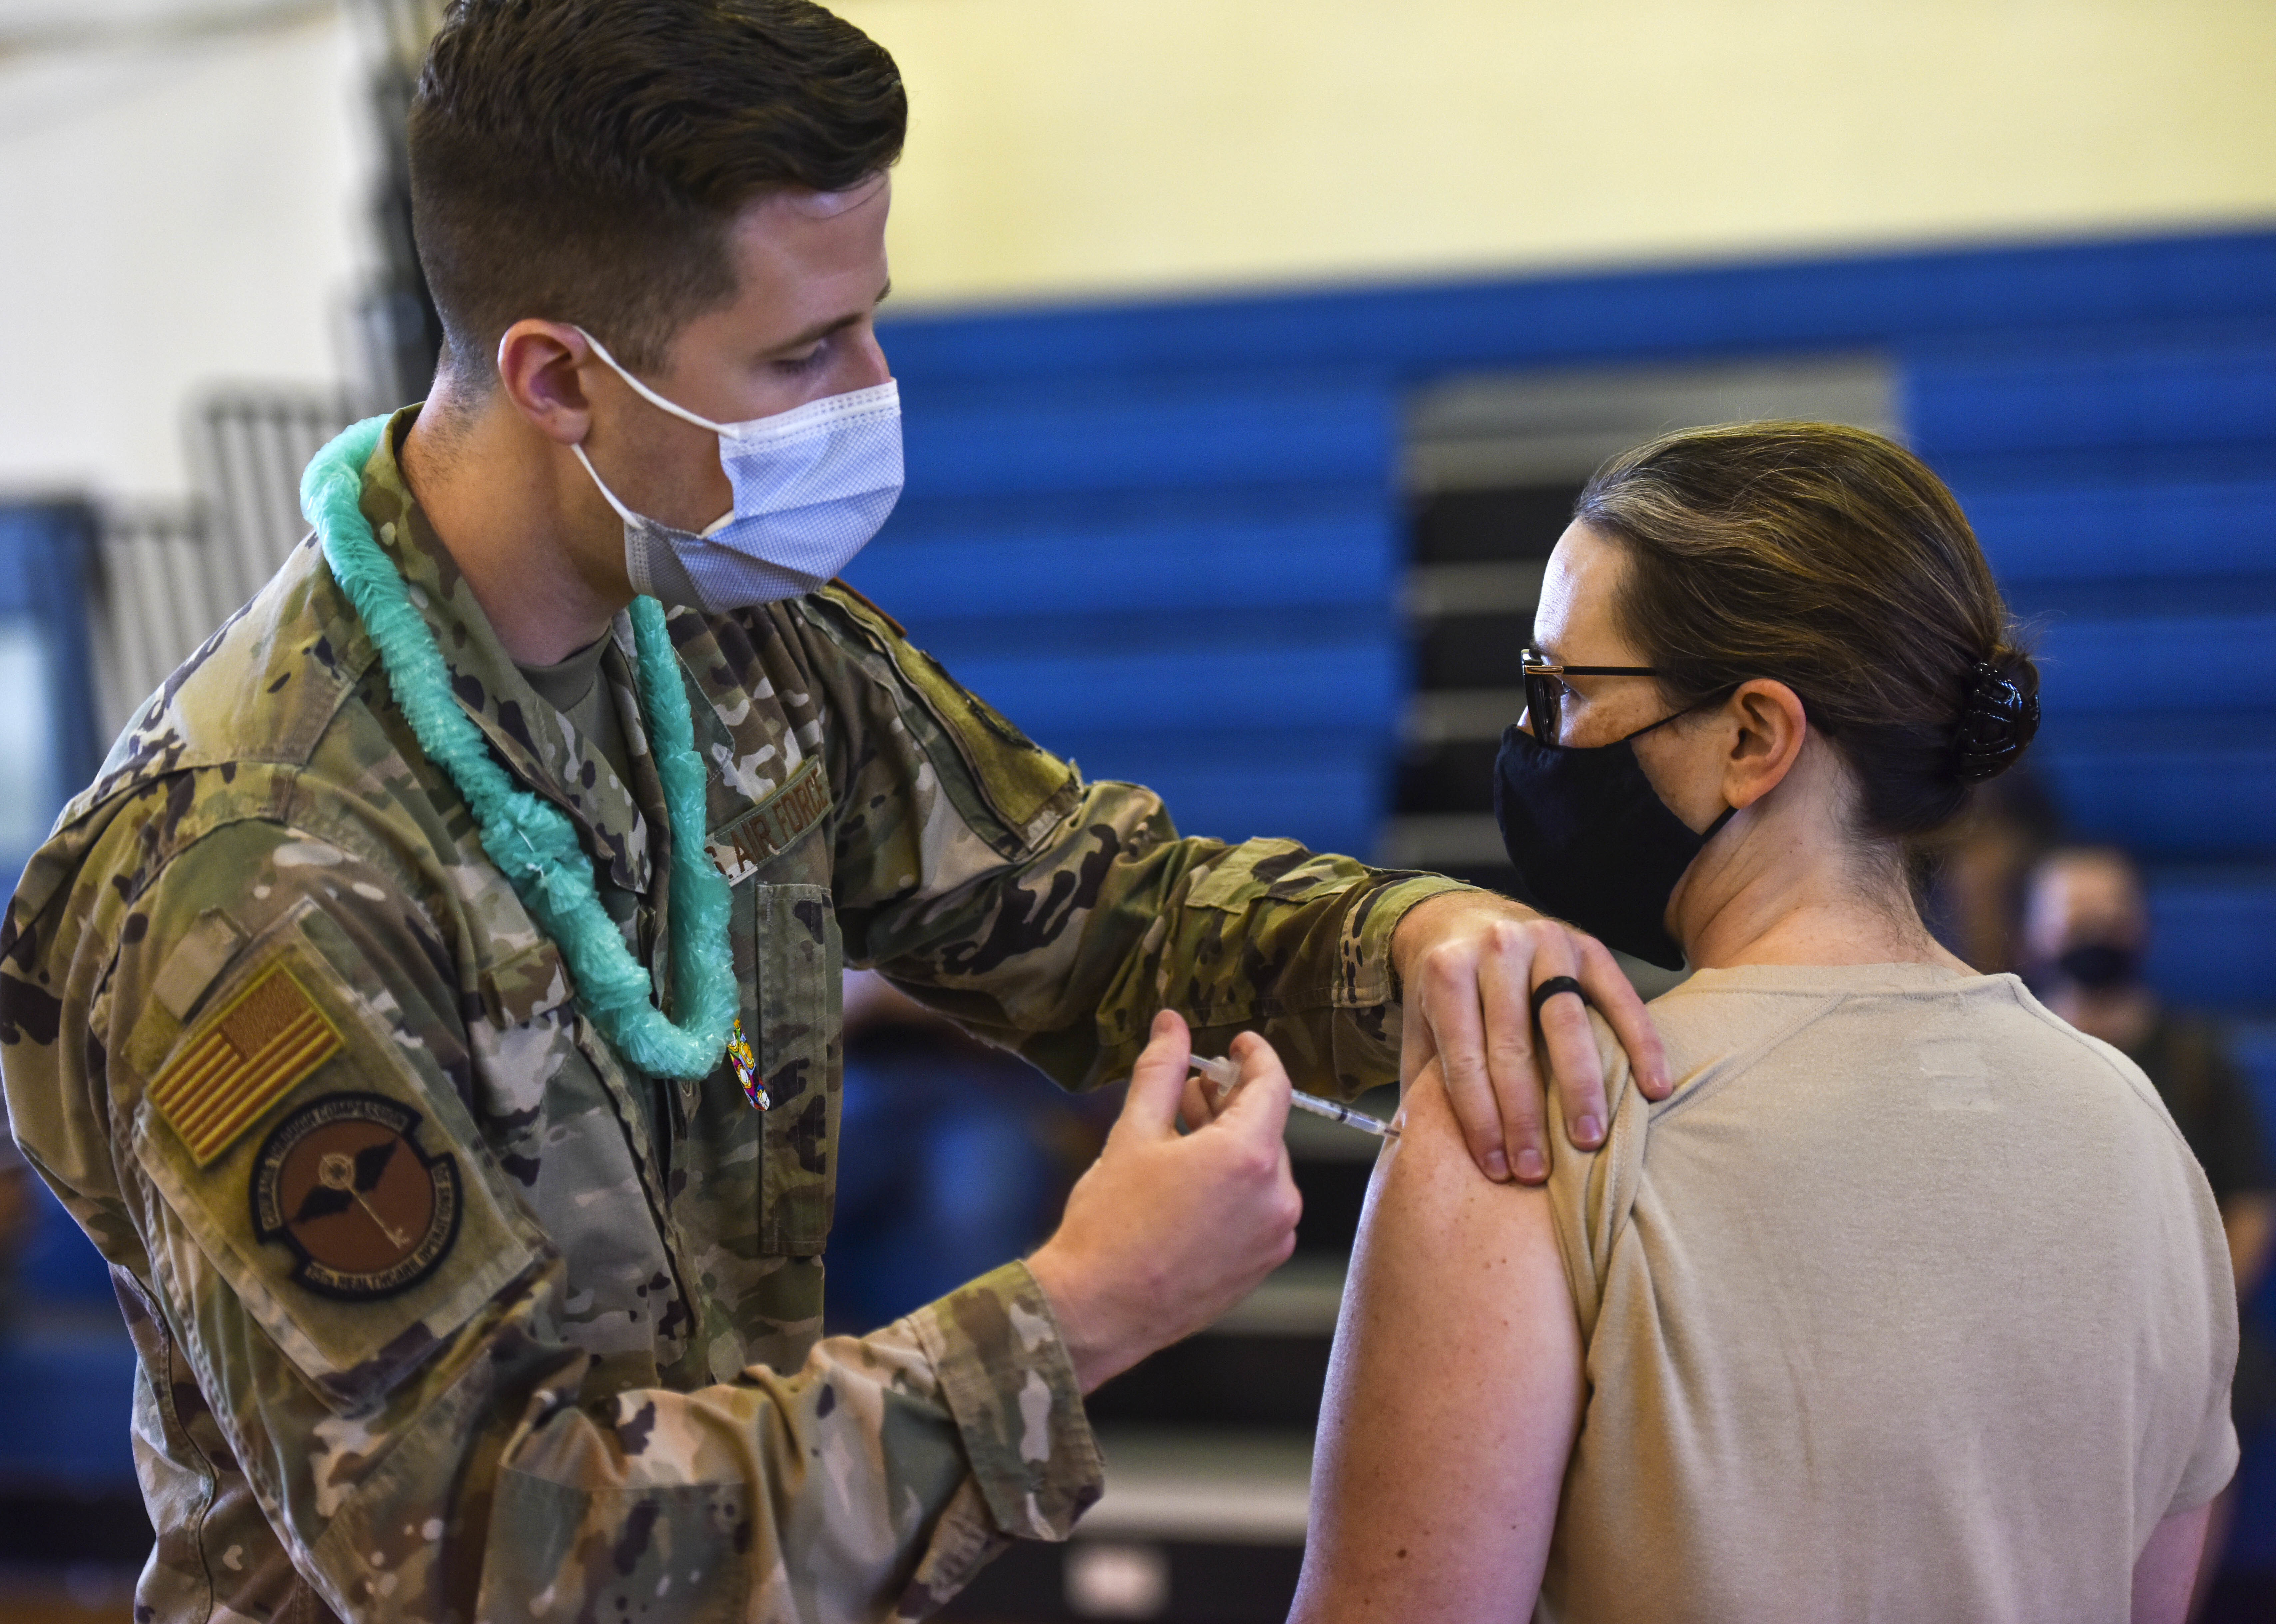 Hickam 15th Medical Group host the first COVID-19 mass vaccination on Joint Base Pearl Harbor-Hickam on Feb. 9, 2021.